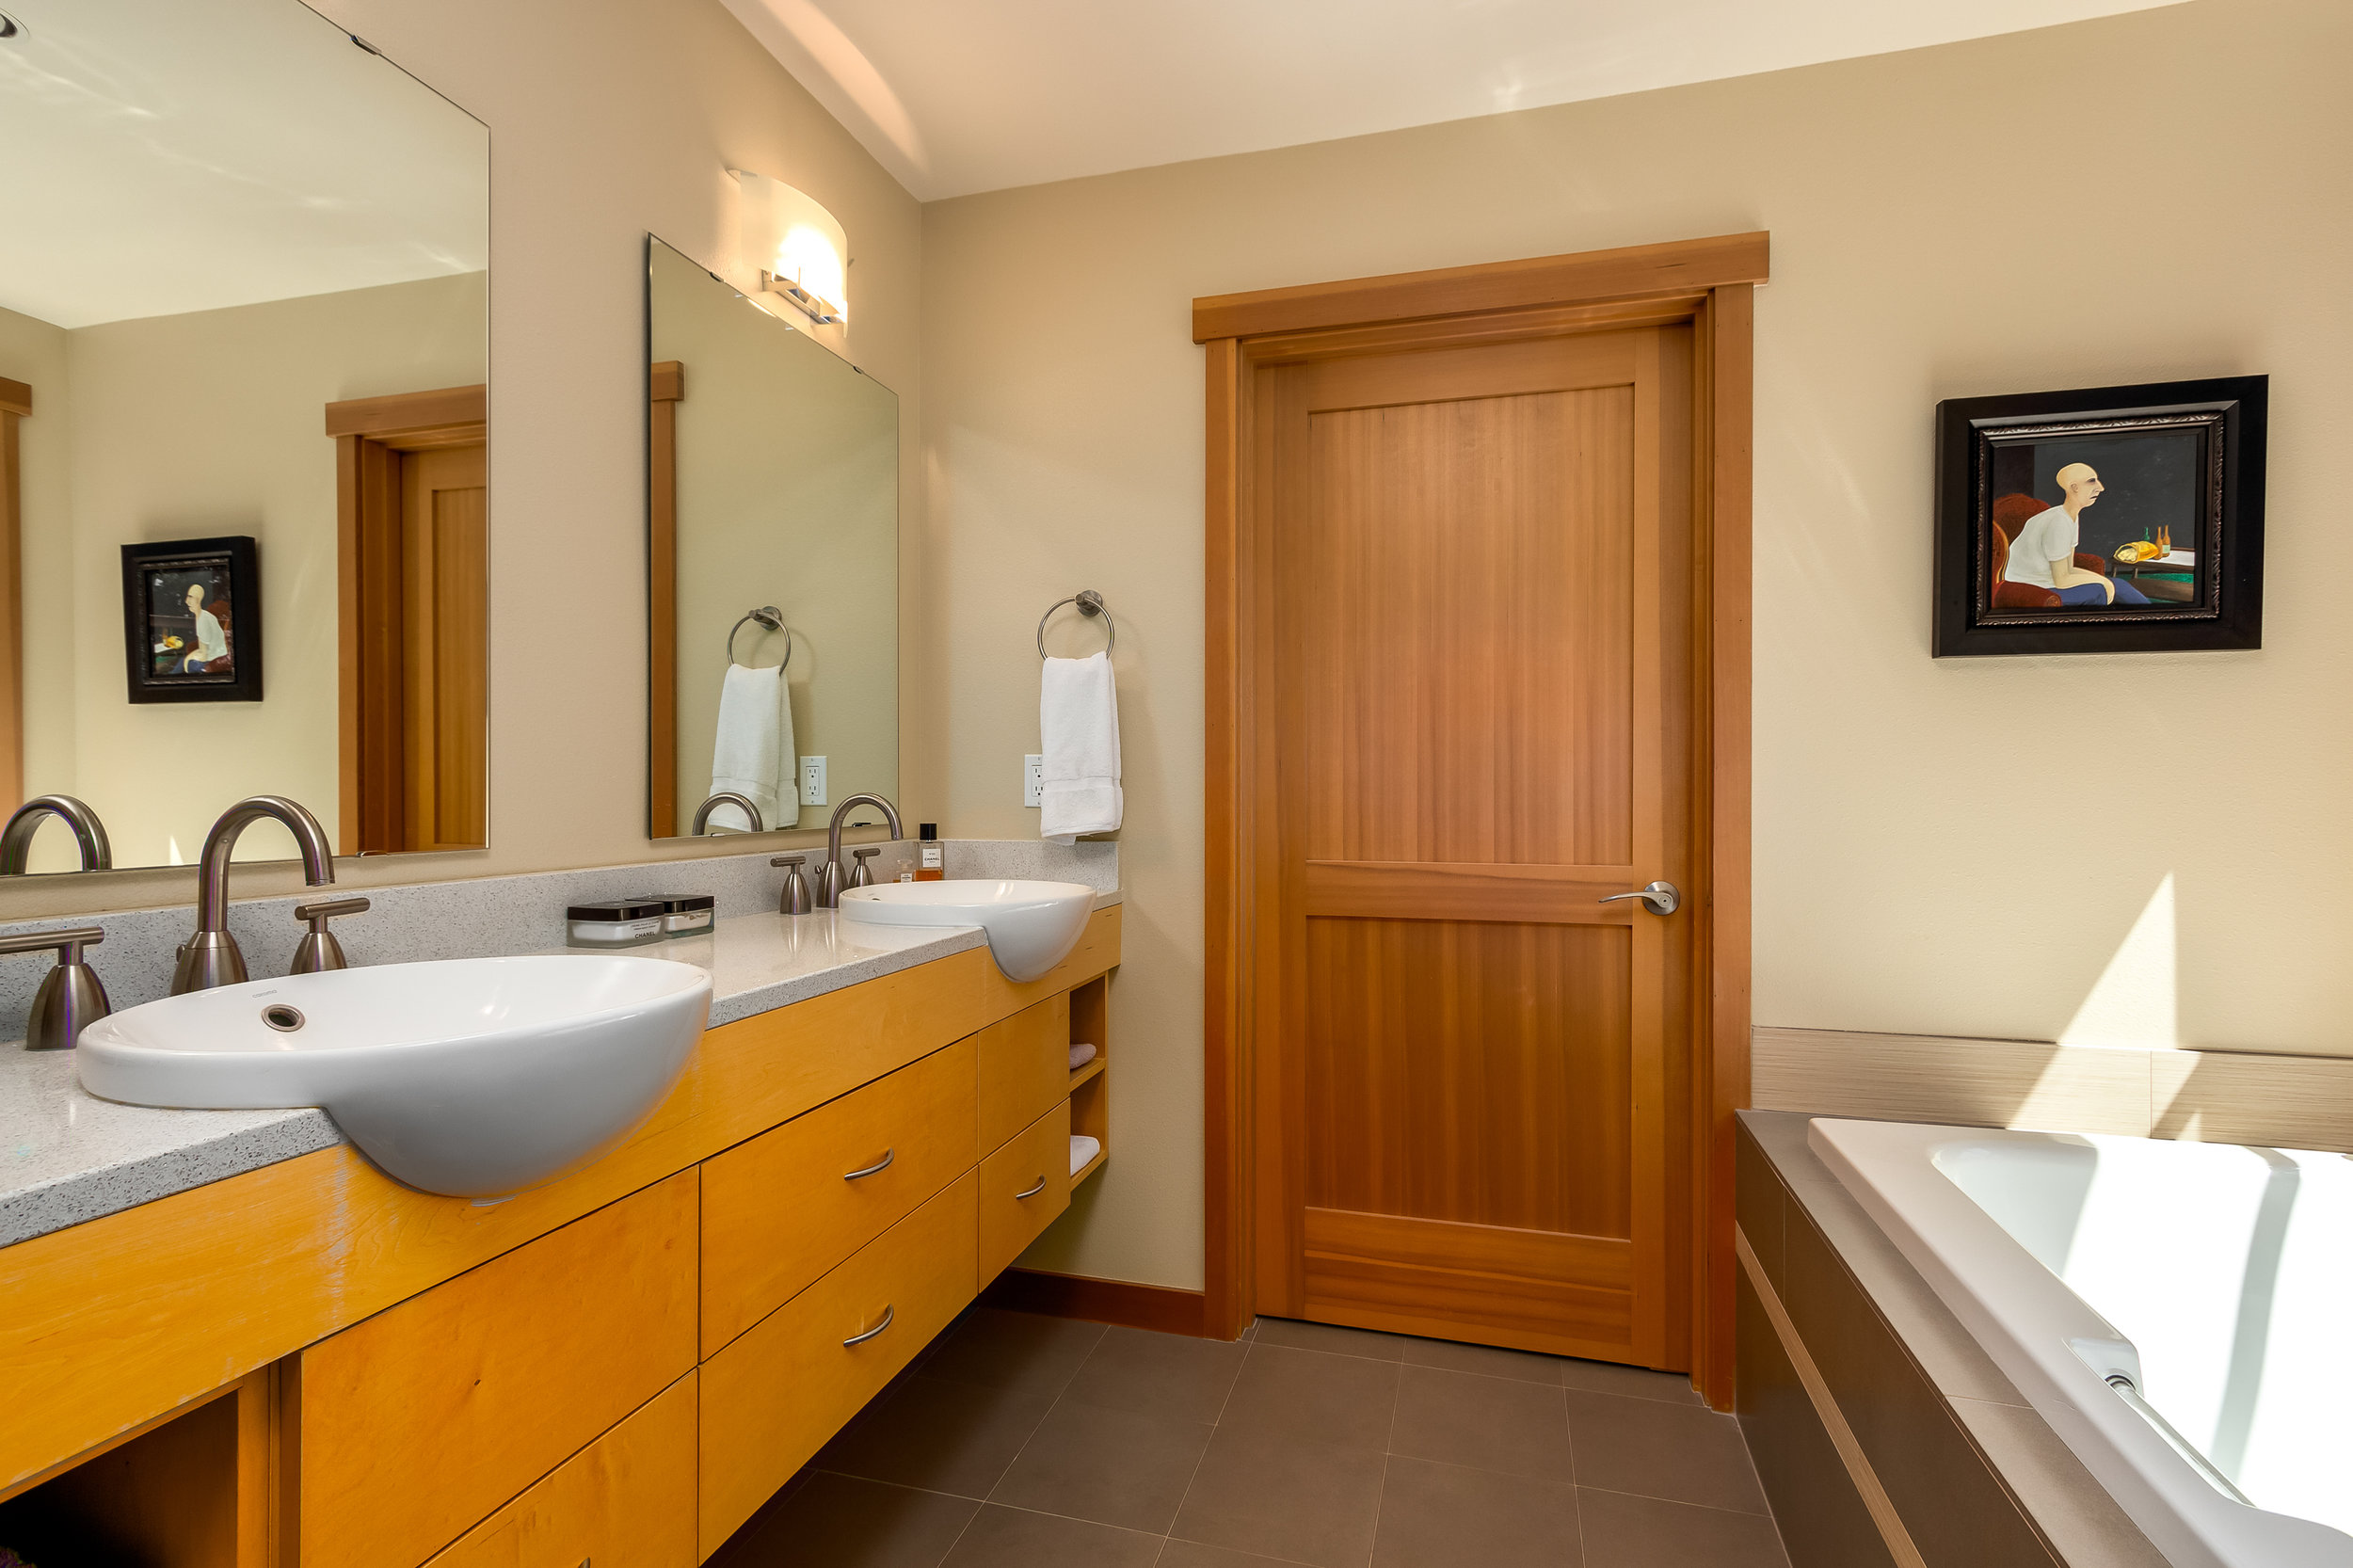 Master Bathroom with soaking tub and double sinks. Luxurious details make you feel like you're in a spa.